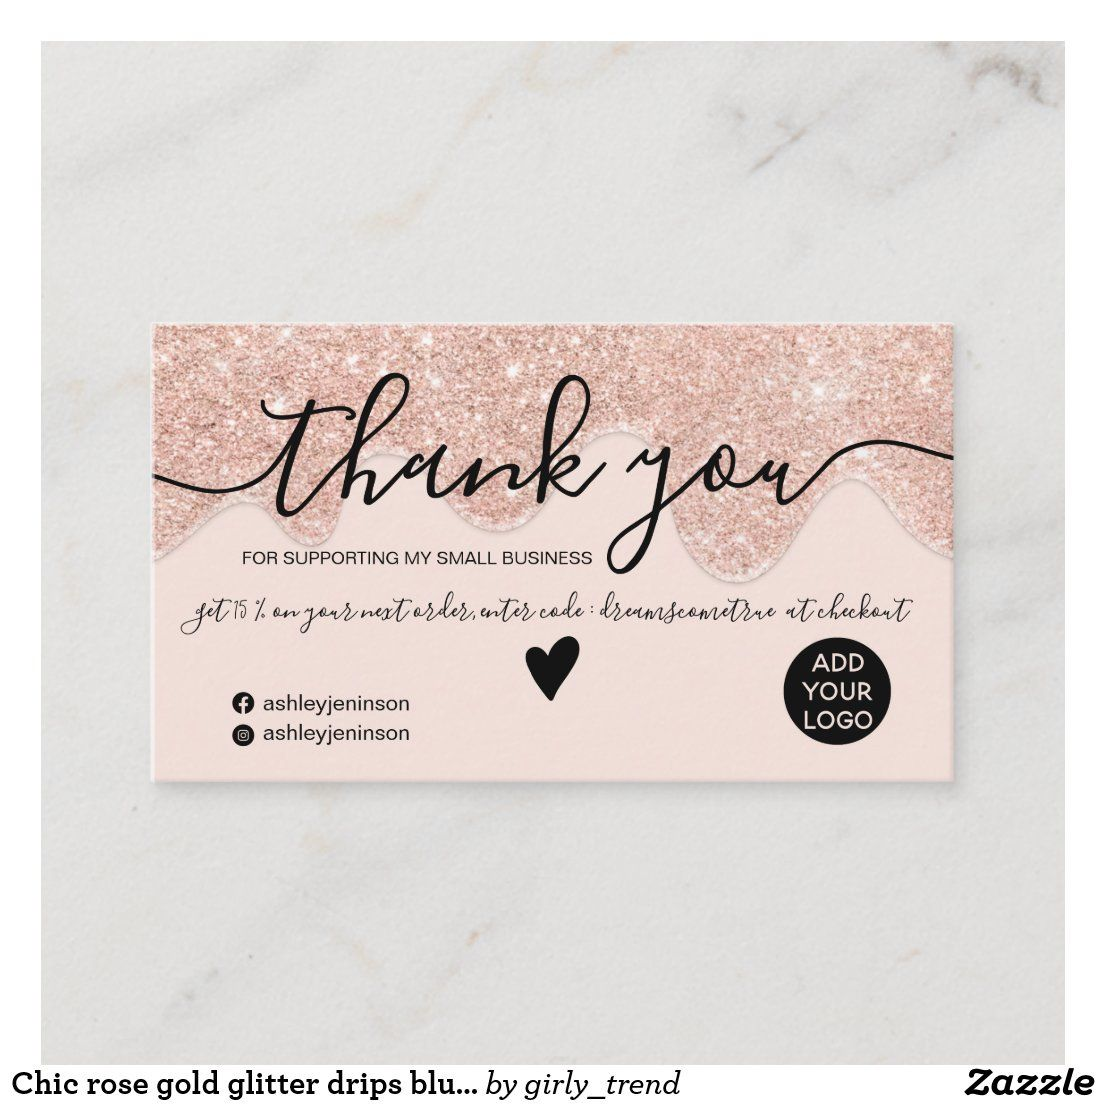 Chic Rose Gold Glitter Drips Blush Order Thank You Business Card Zazzle Com In 2021 Minimalist Business Cards Rose Gold Glitter Pink Business Card